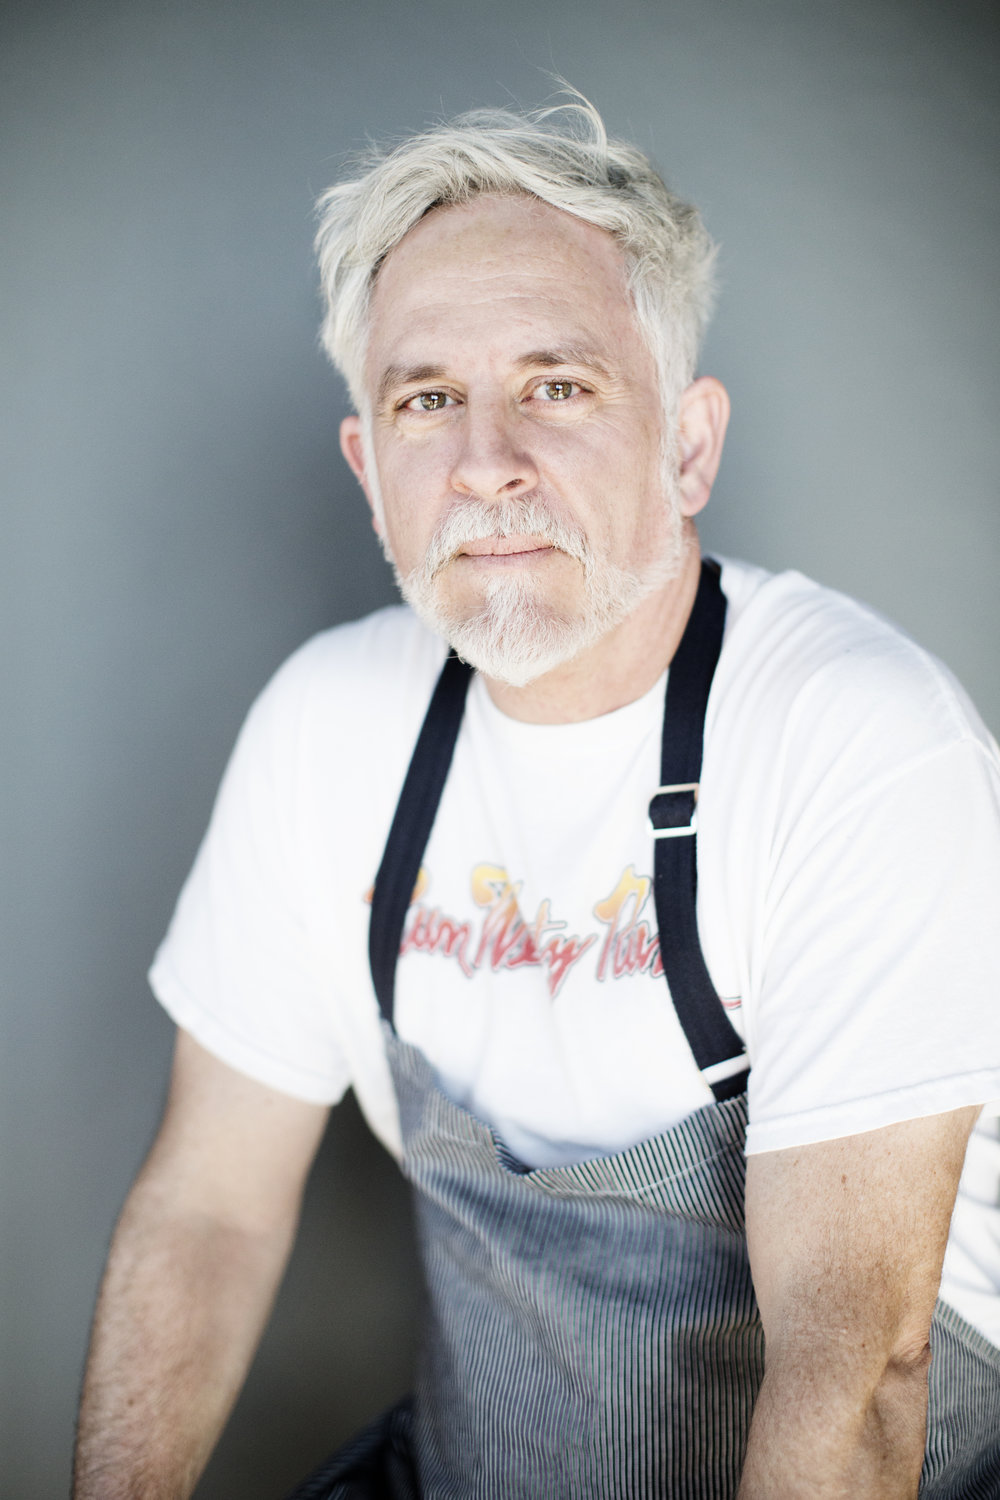 Steven Brown - Chef and Owner Steven has worked in restaurants for over 30 years - from The Chief Café in his hometown of Custer, SD to gastro temple Osteria la Francescana in Modena, Italy with many local spots along the way, notably, Lucia's, Café Levain and his personal favorite, The Loring Café.  Each one a learning experience, each one filled with memories of meals served, but more importantly of friends made. St Genevieve is his second venture as an owner/operator and he feels blessed (yet again) to work with such caring, talented and passionate people.